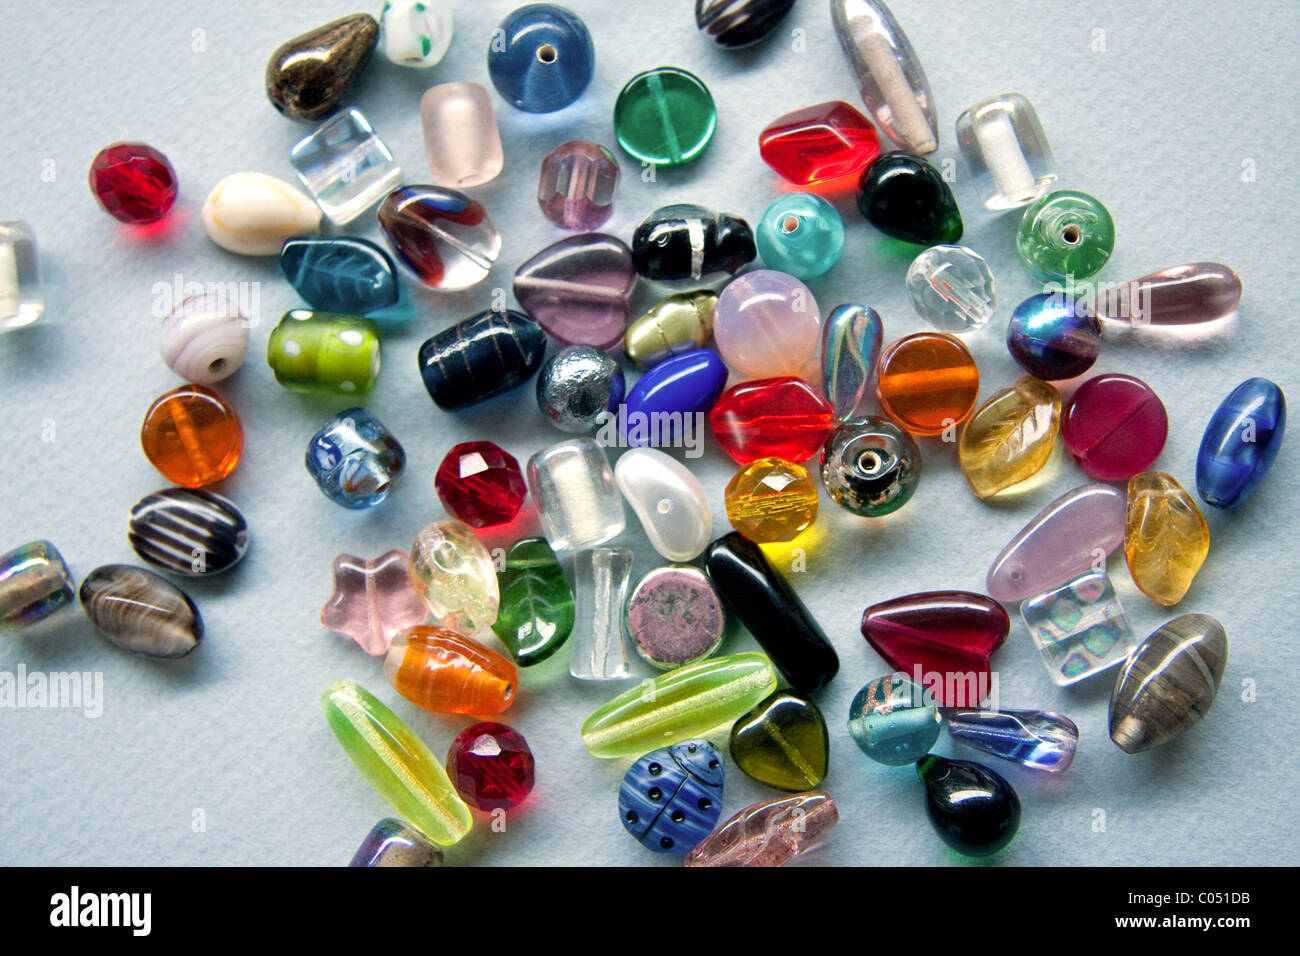 Colorful Glass Beads - Stock Image